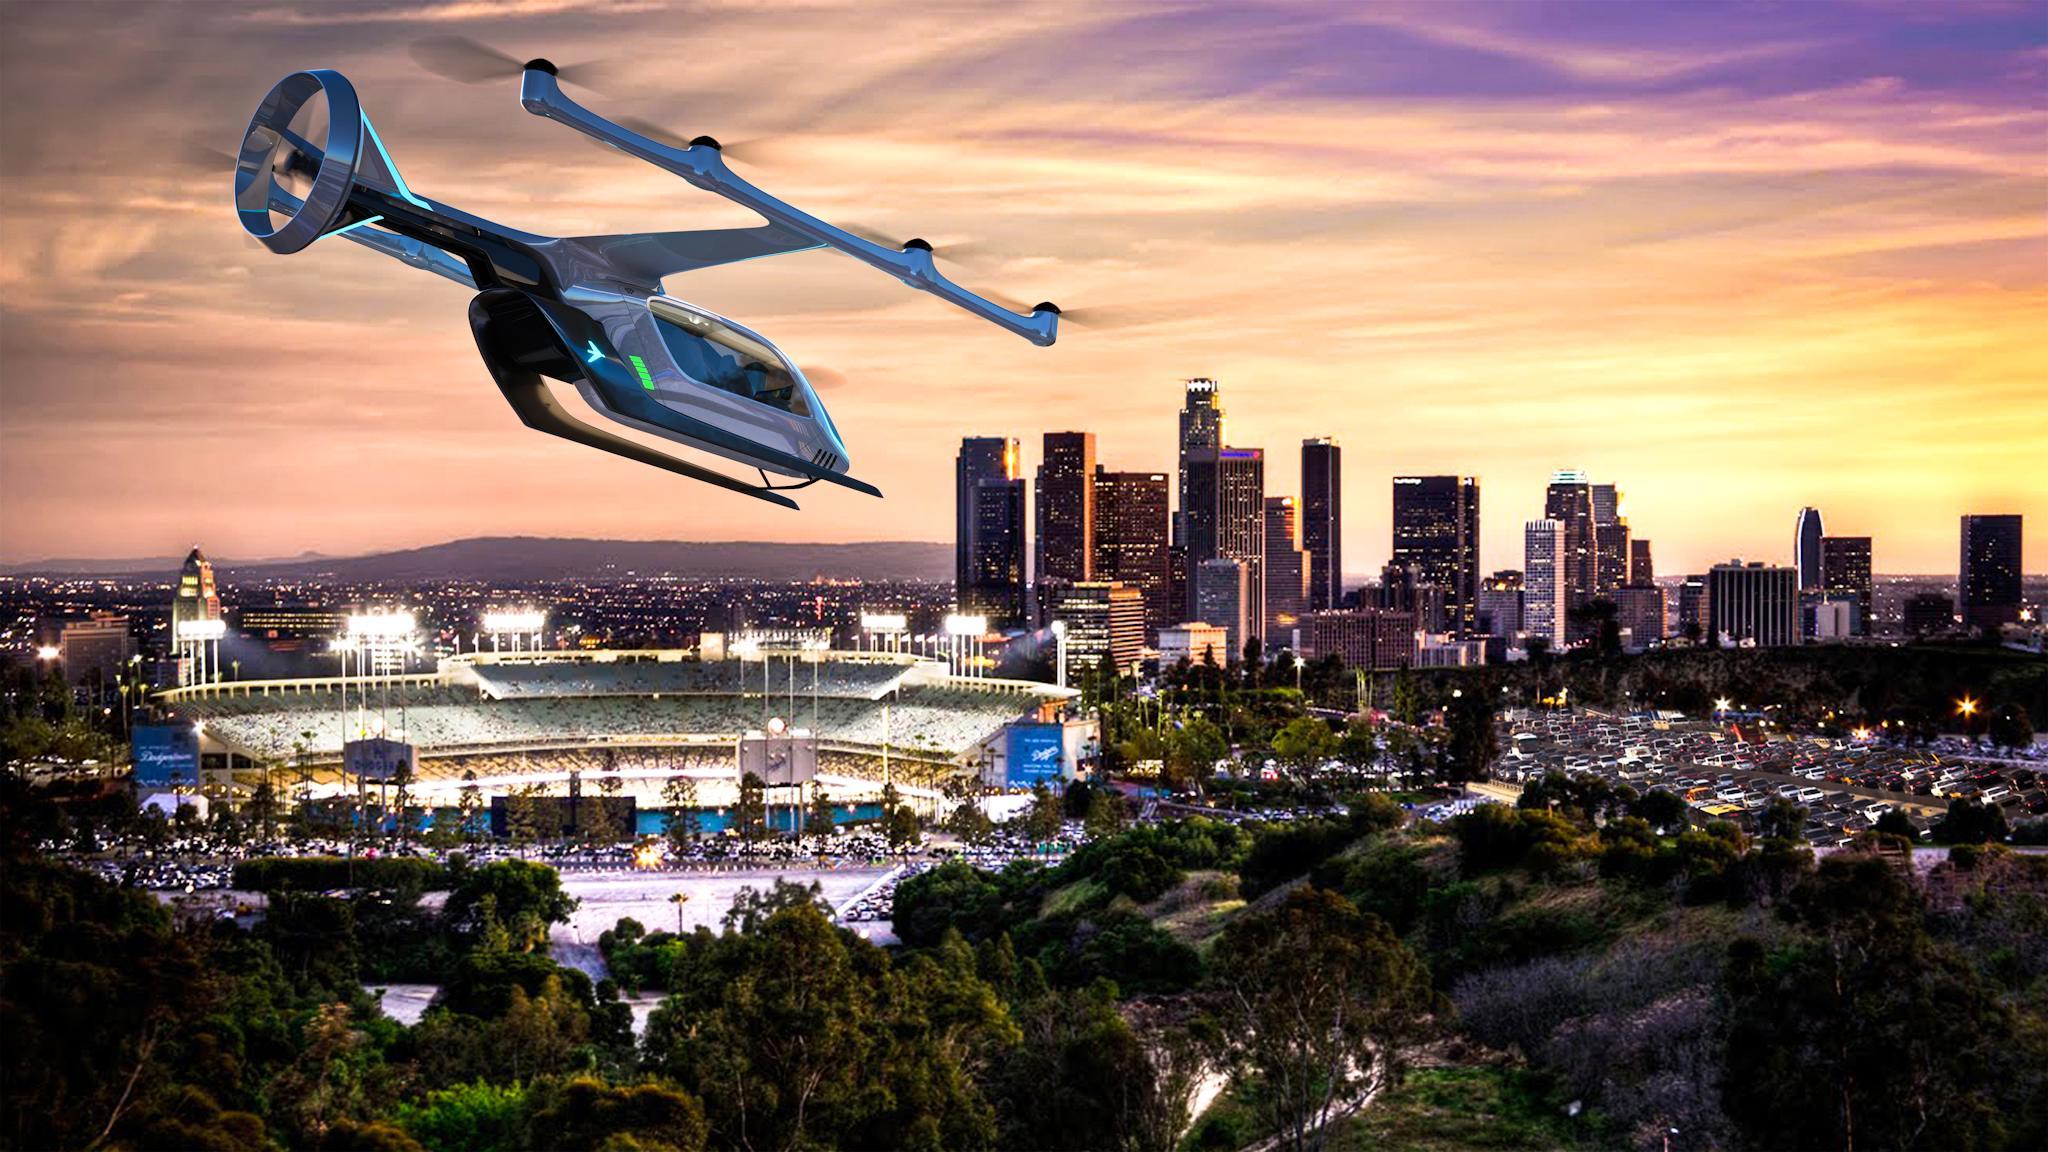 636613916453277315-EmbraerX Embraer floats new way to move around town: An electric taxi cab, like Uber for the skies